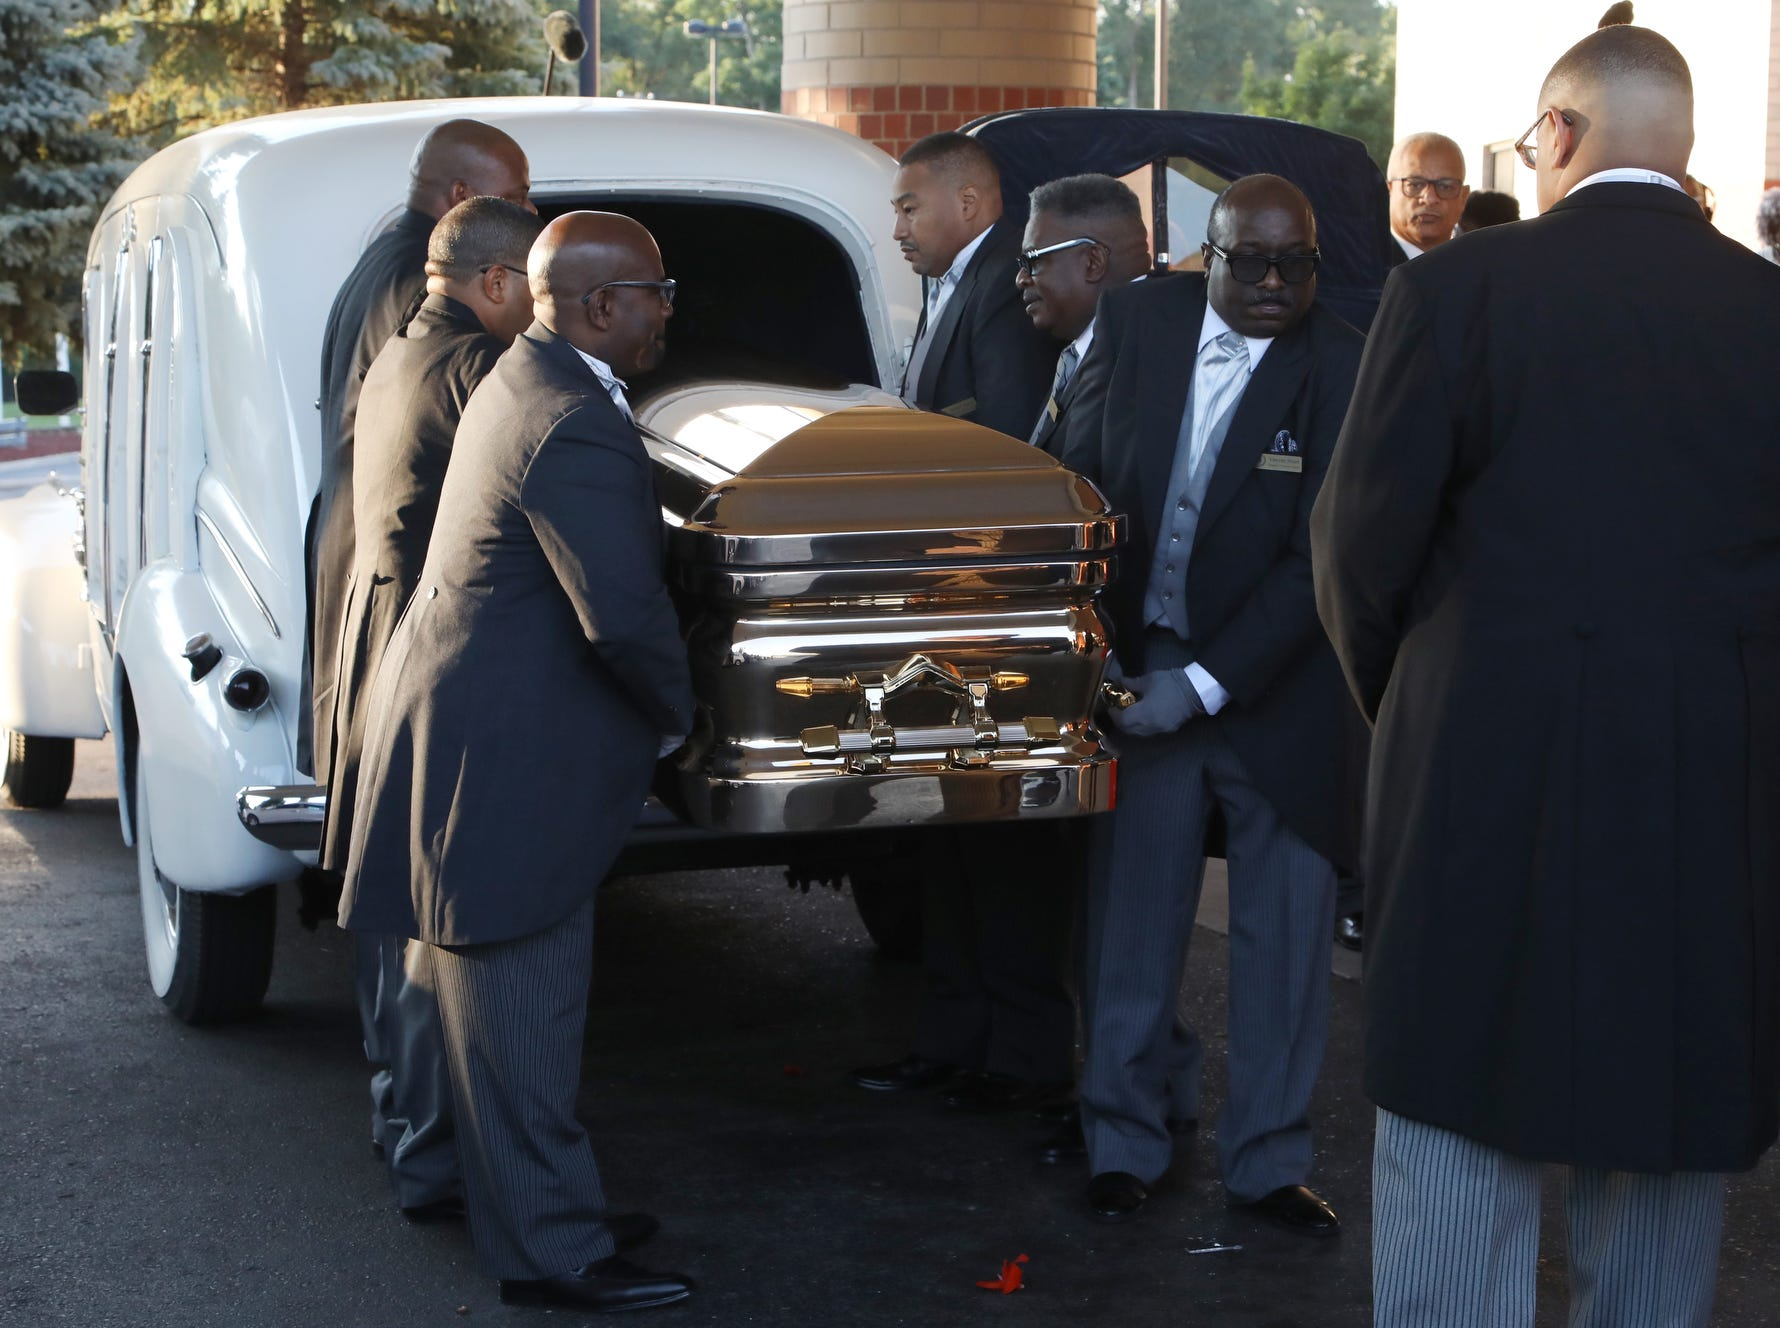 Aretha Franklin's casket arrives at Greater Grace Temple in Detroit ahead of her funeral on Friday, August 31, 2018.